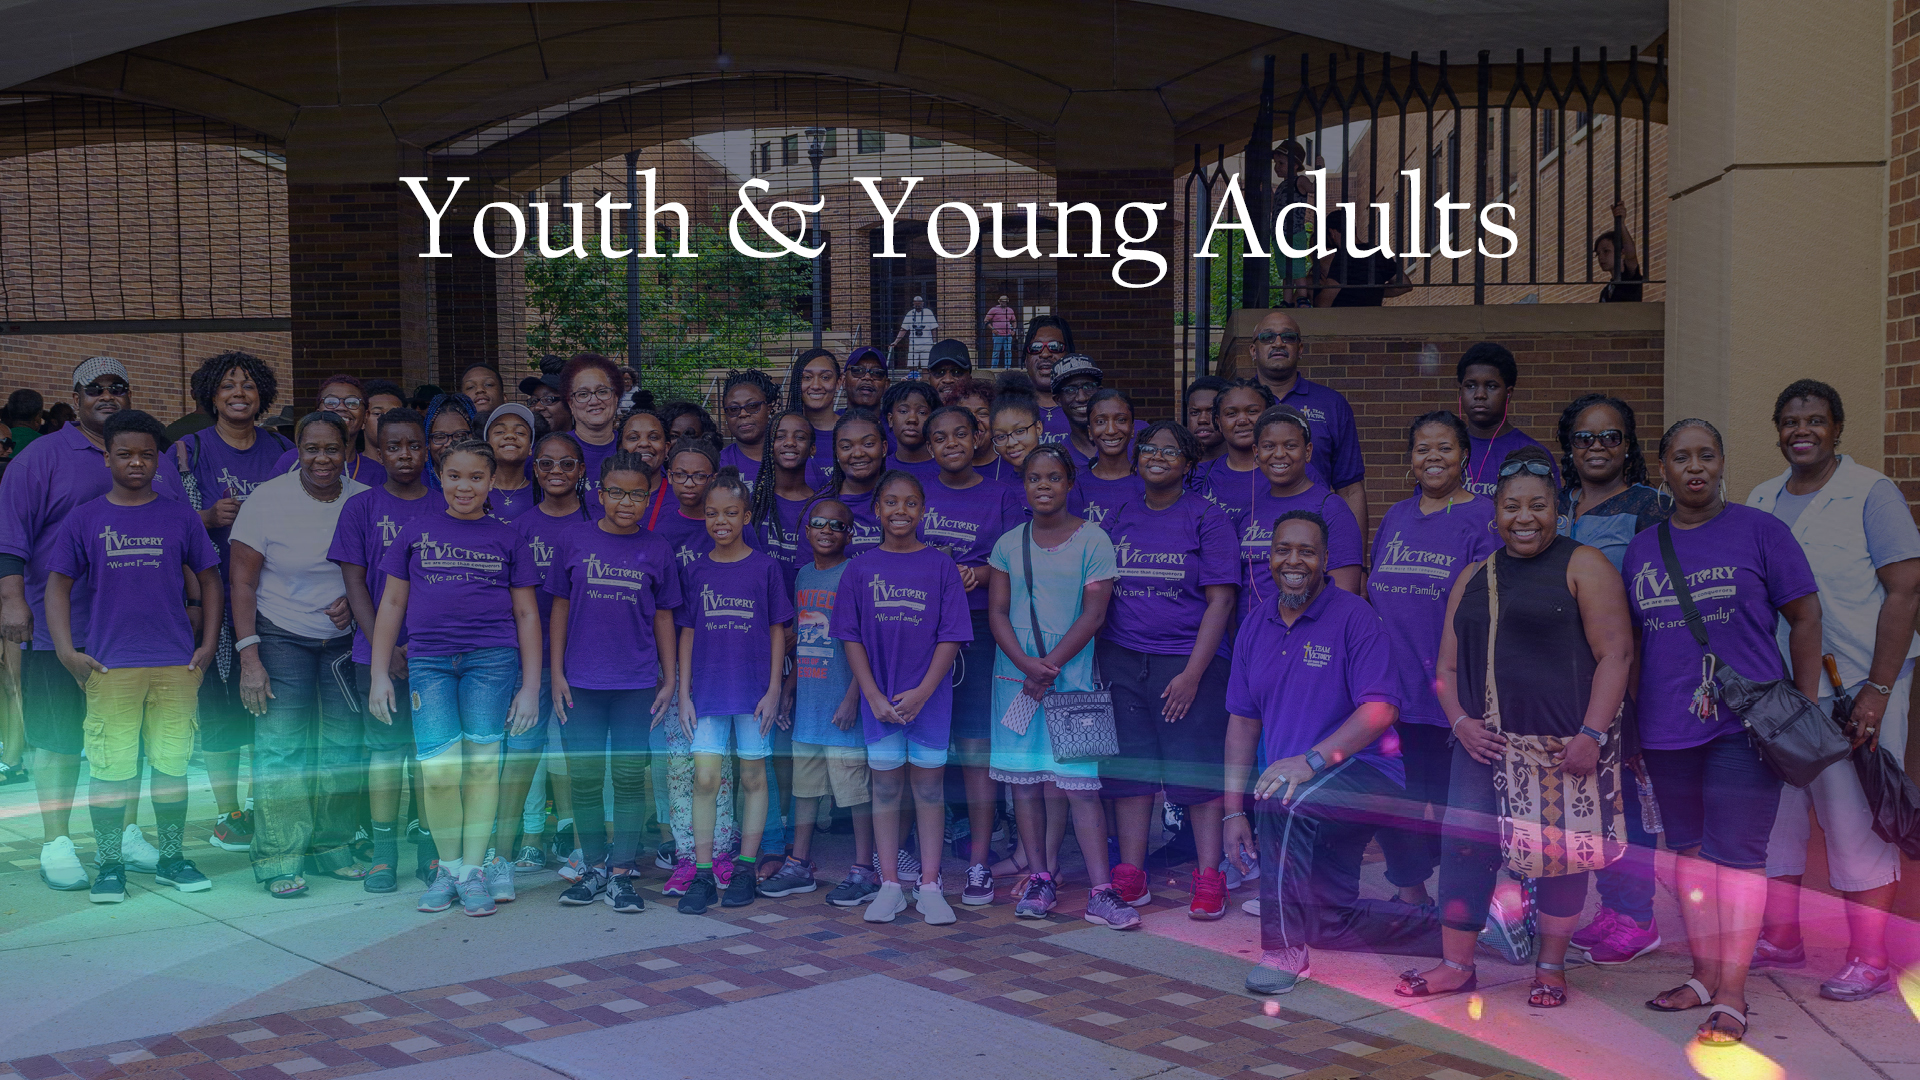 Youth Group Banner